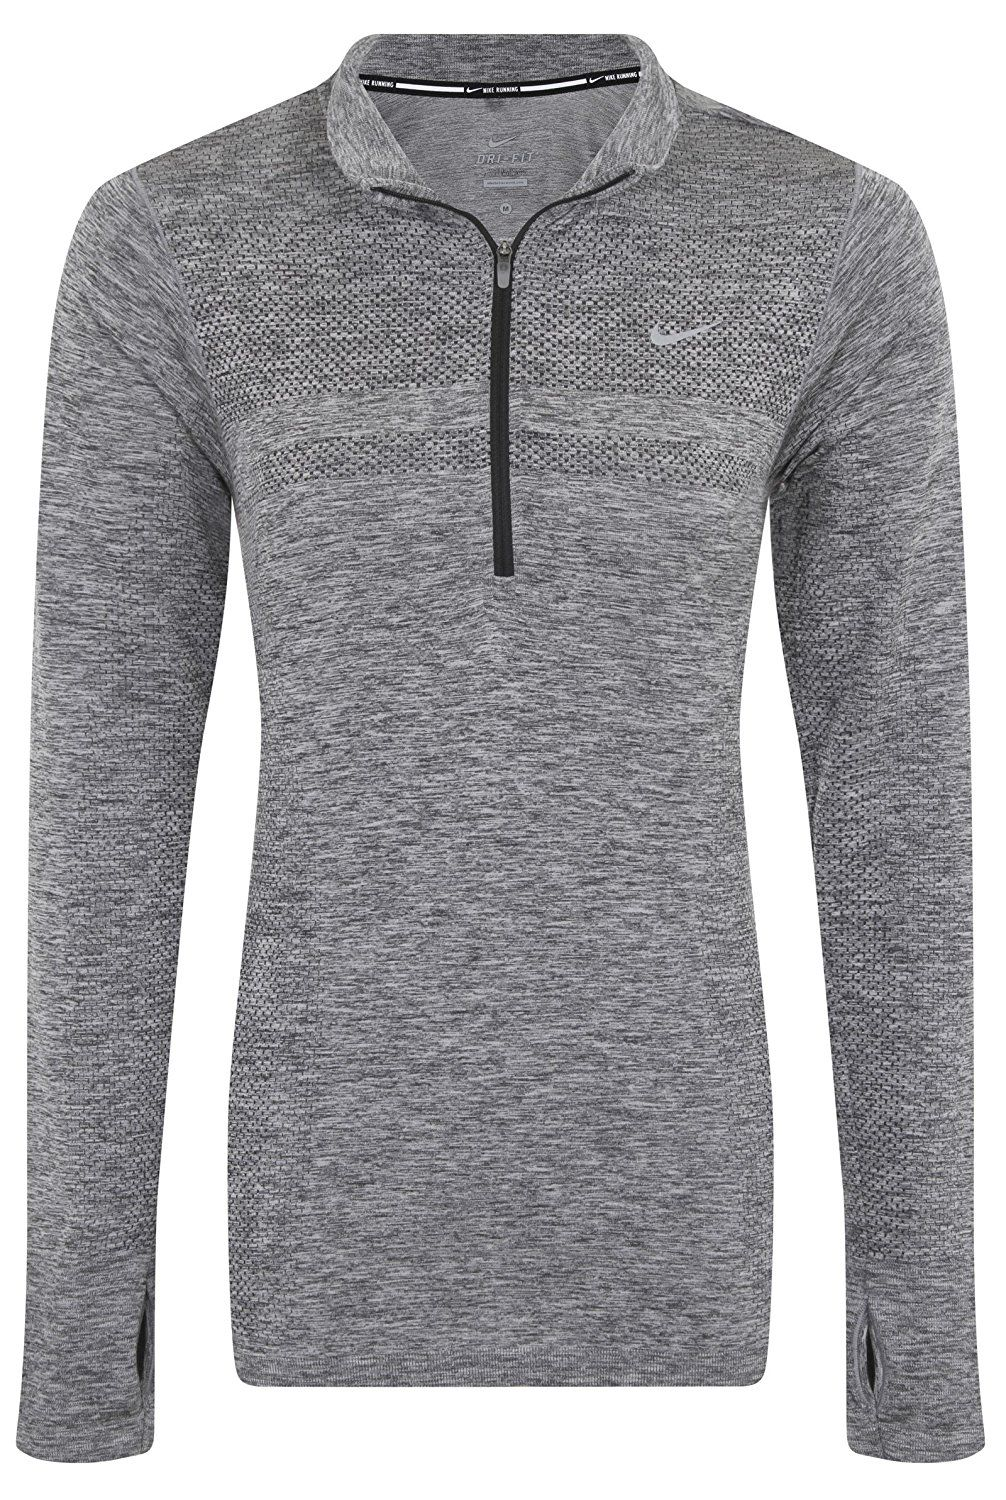 fe507e33 Nike Dri-Fit Knit Half Zip Womens Long Sleeve Running Top at Amazon Women's  Clothing store: